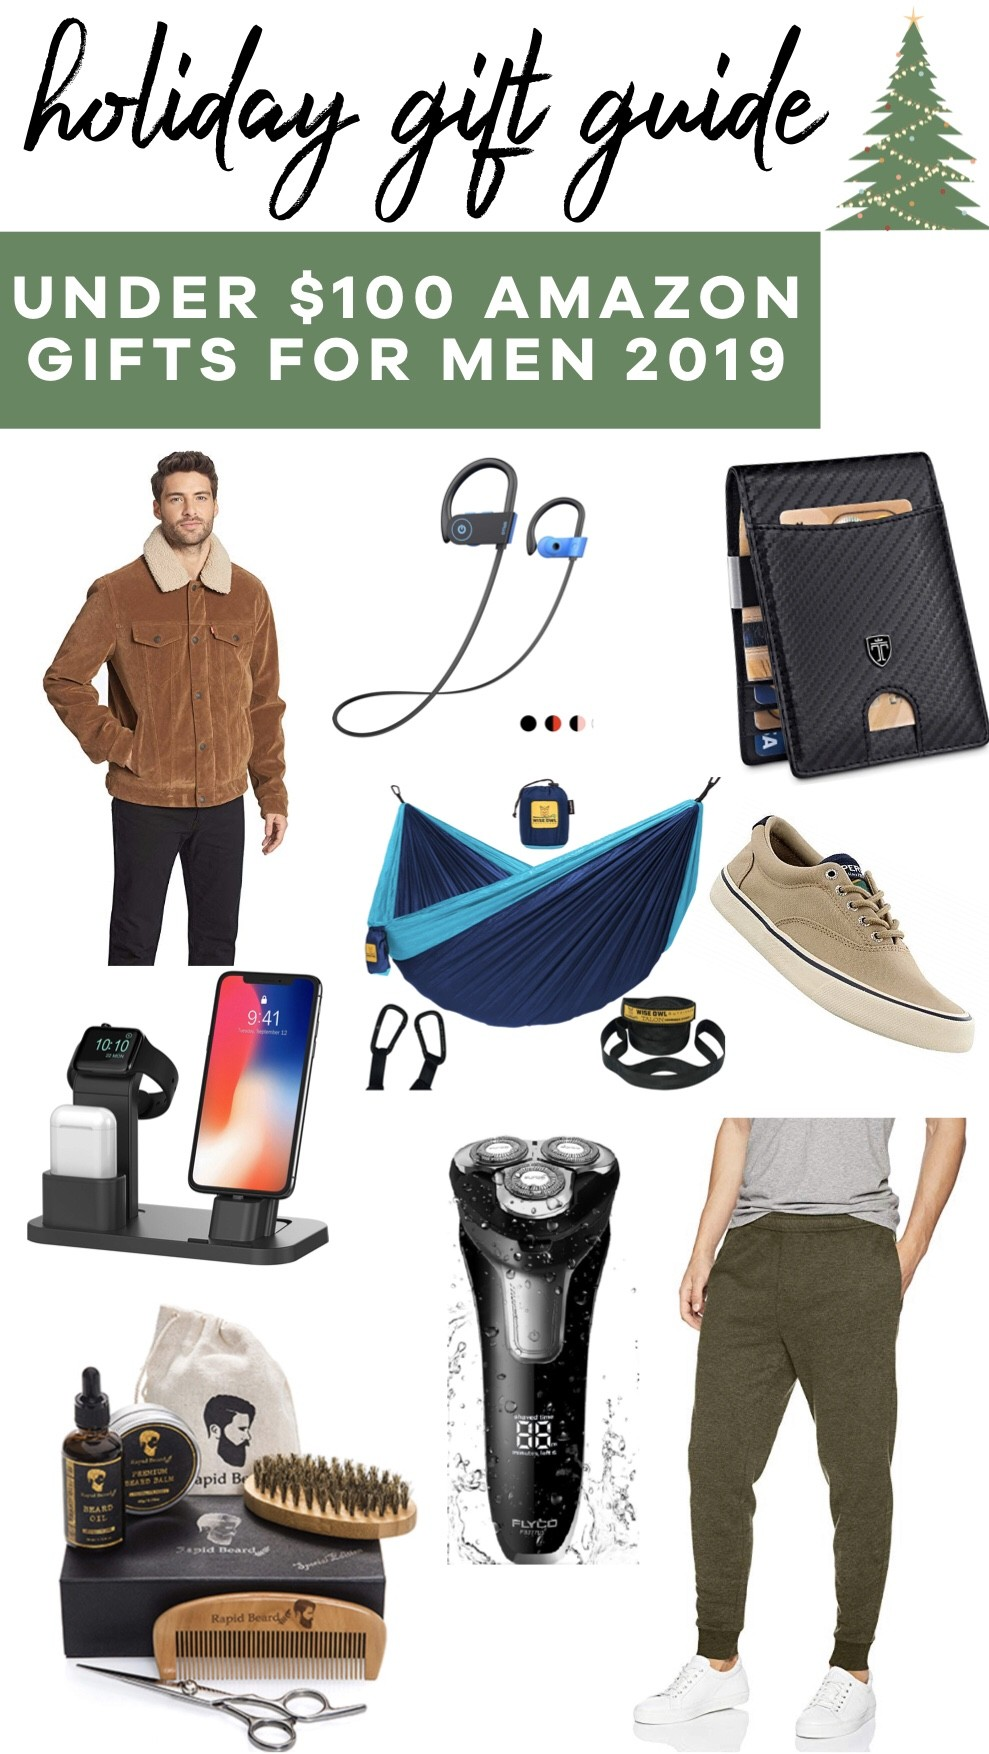 Holiday Gift Guide: Amazon Gifts for Men Under $100 | Affordable by Amanda | Holiday Gifts 2019